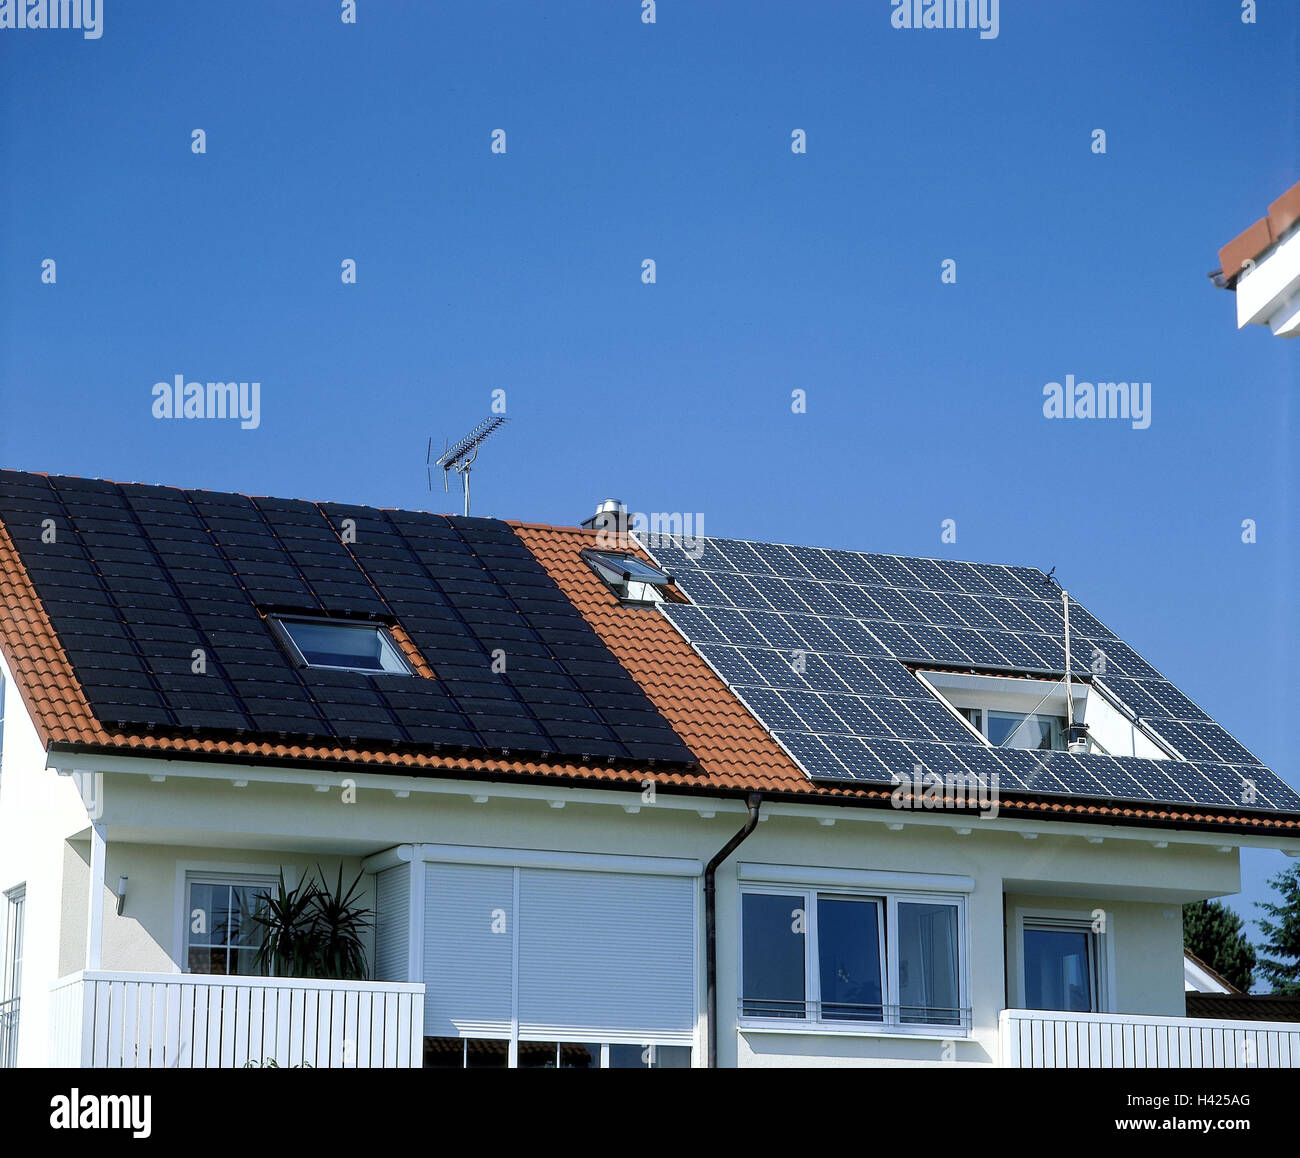 Germany, house roof, solar energy, solar panels on the left, solar cells on the right, house, residential house, - Stock Image